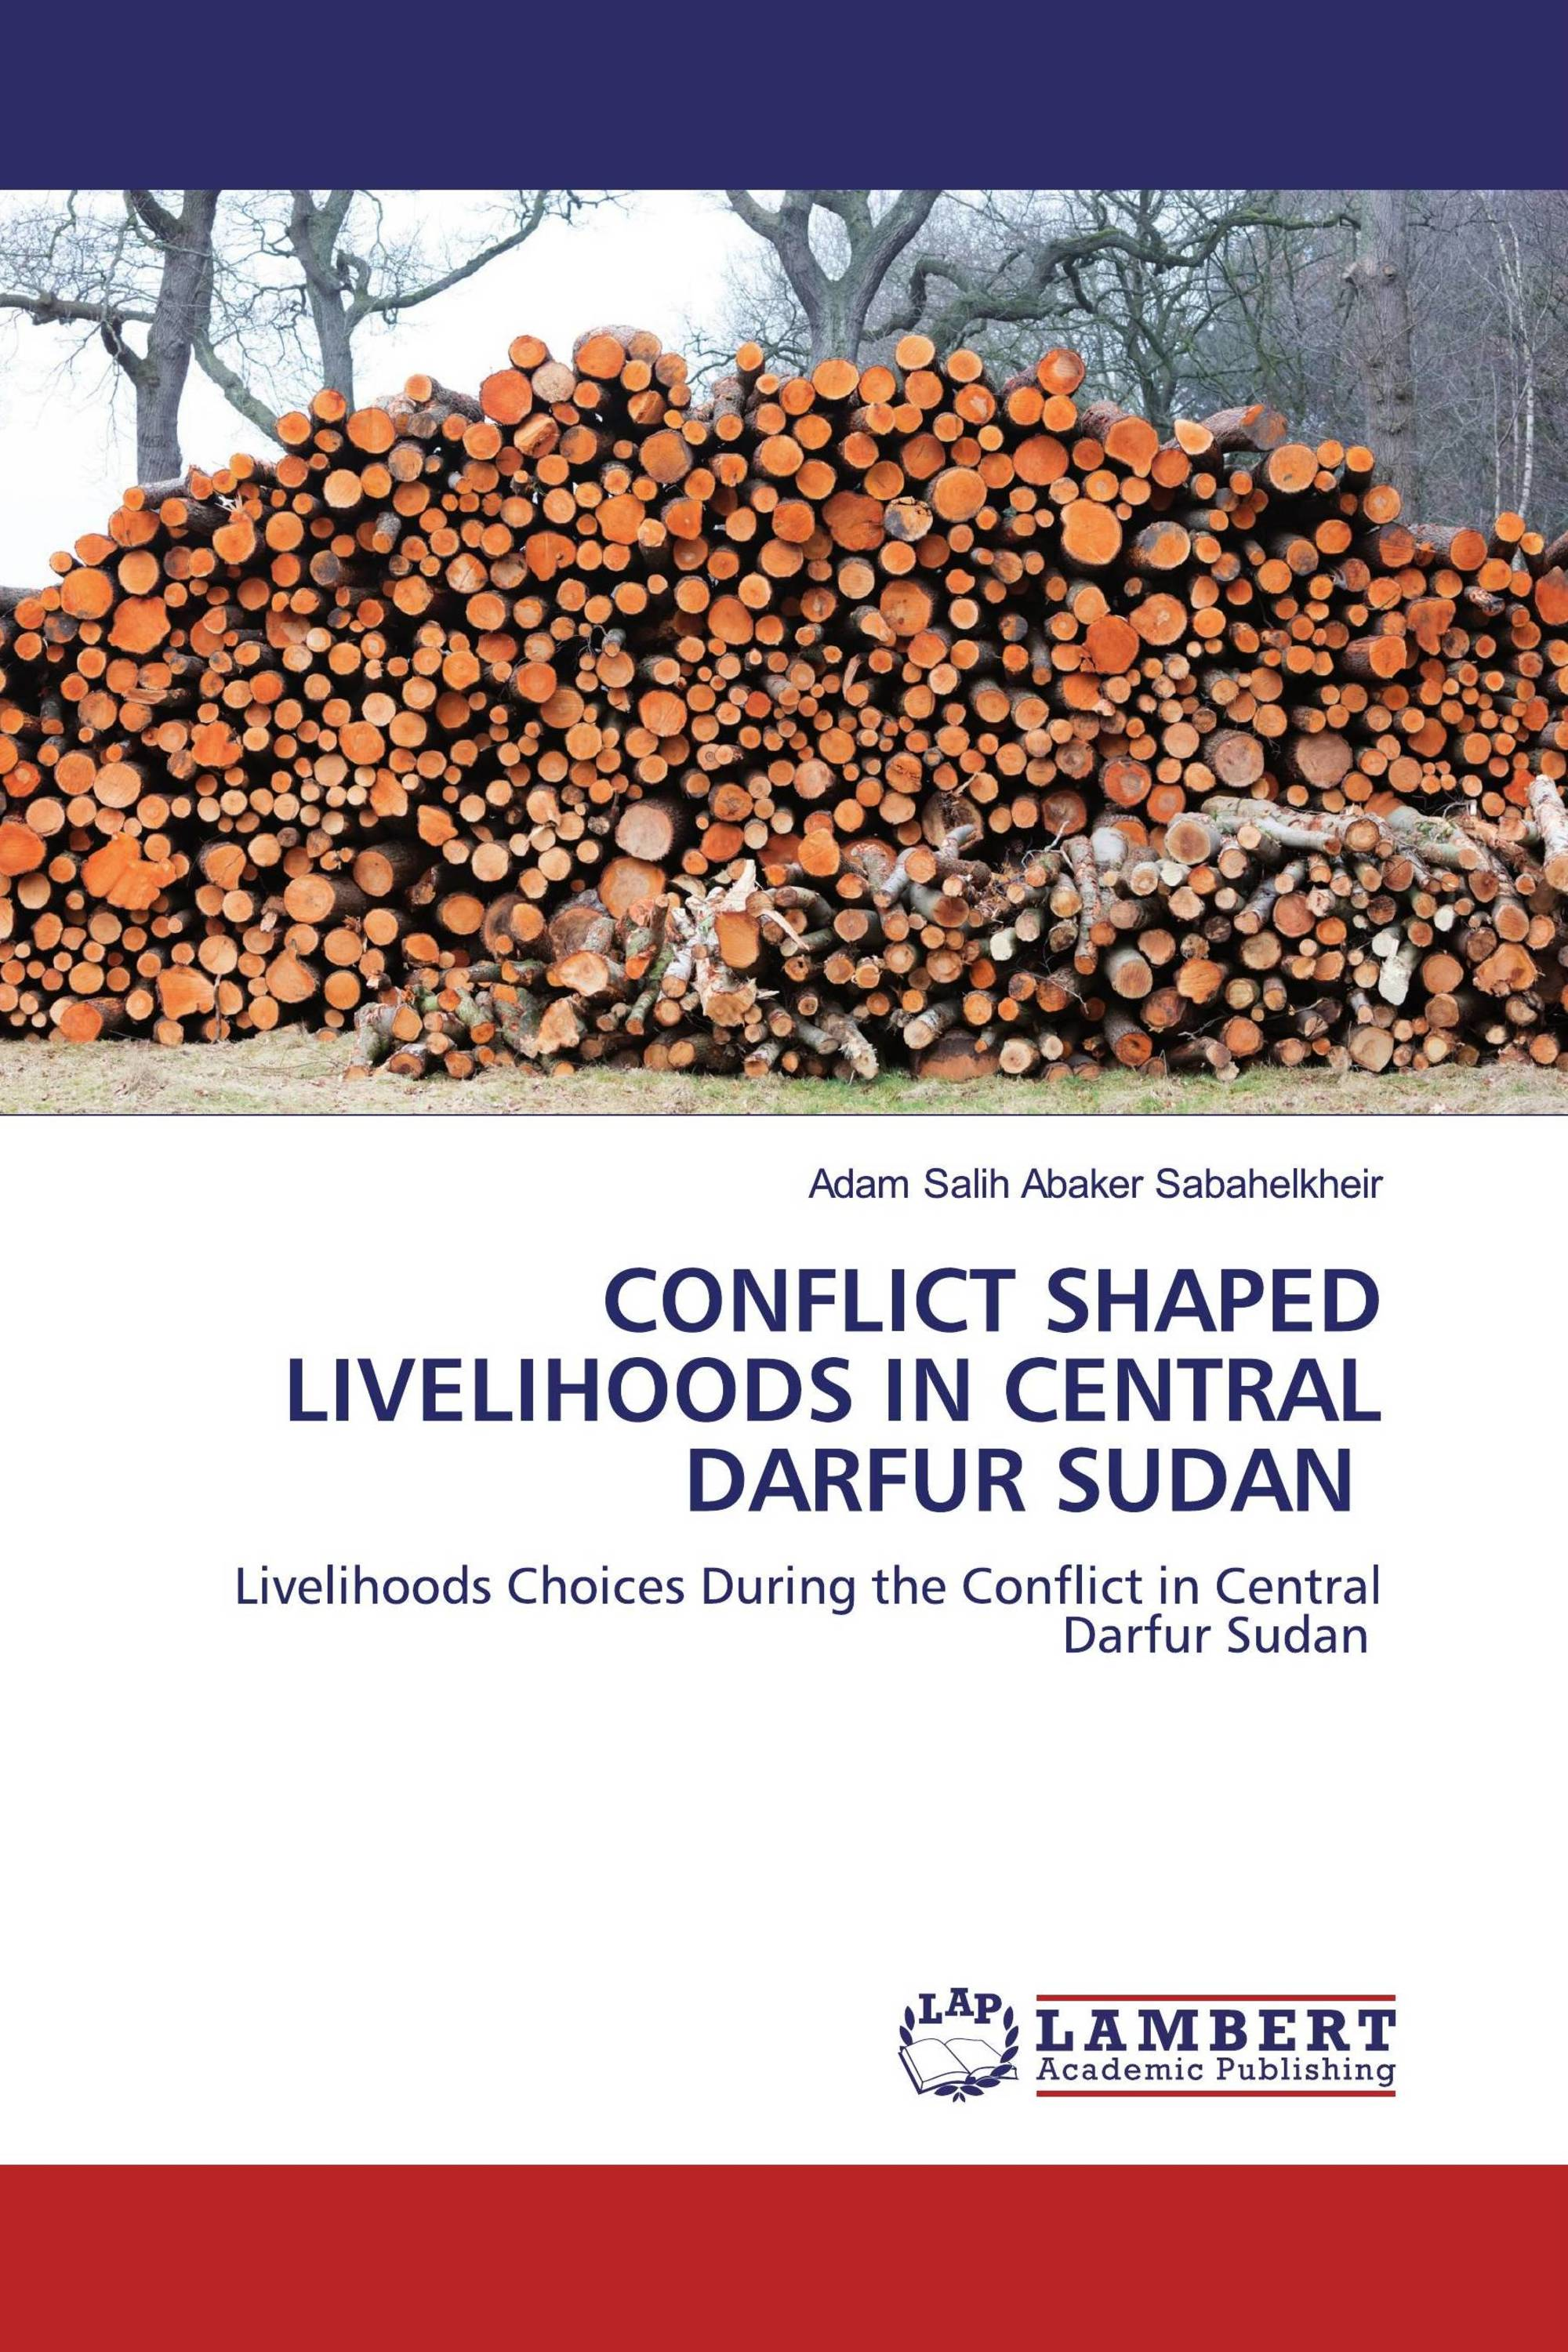 CONFLICT SHAPED LIVELIHOODS IN CENTRAL DARFUR ‎SUDAN ‎